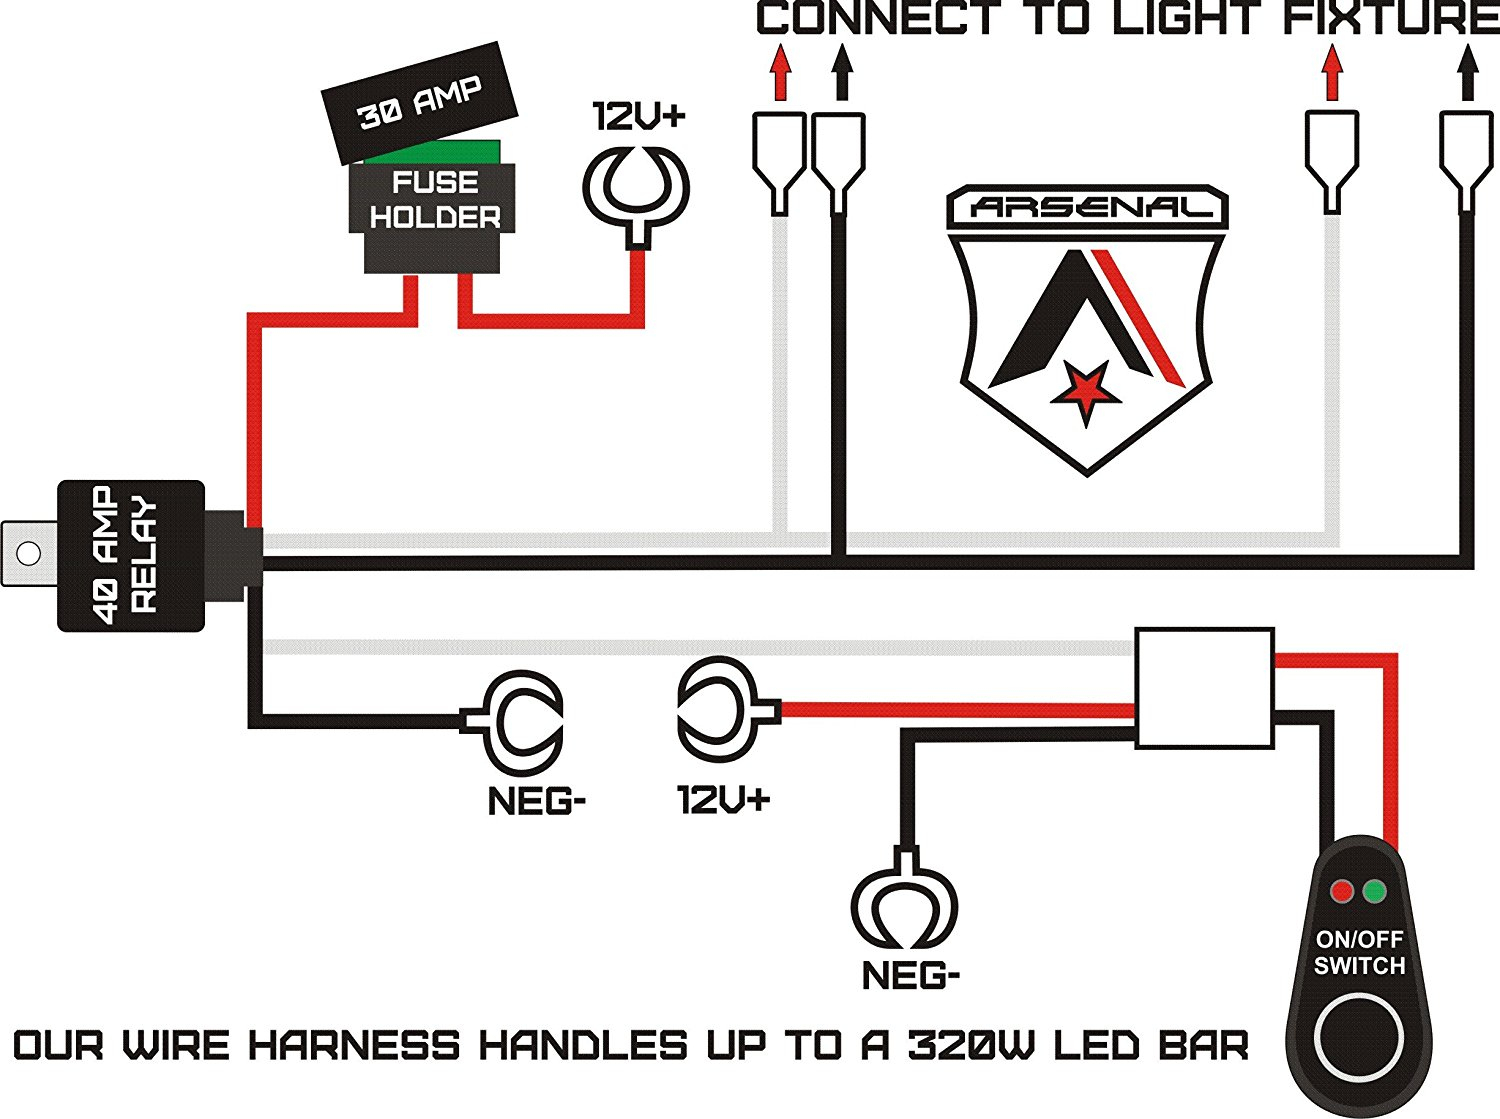 Wiring Harness Diagram - Wiring Diagrams Click - Pioneer Wiring Harness Diagram